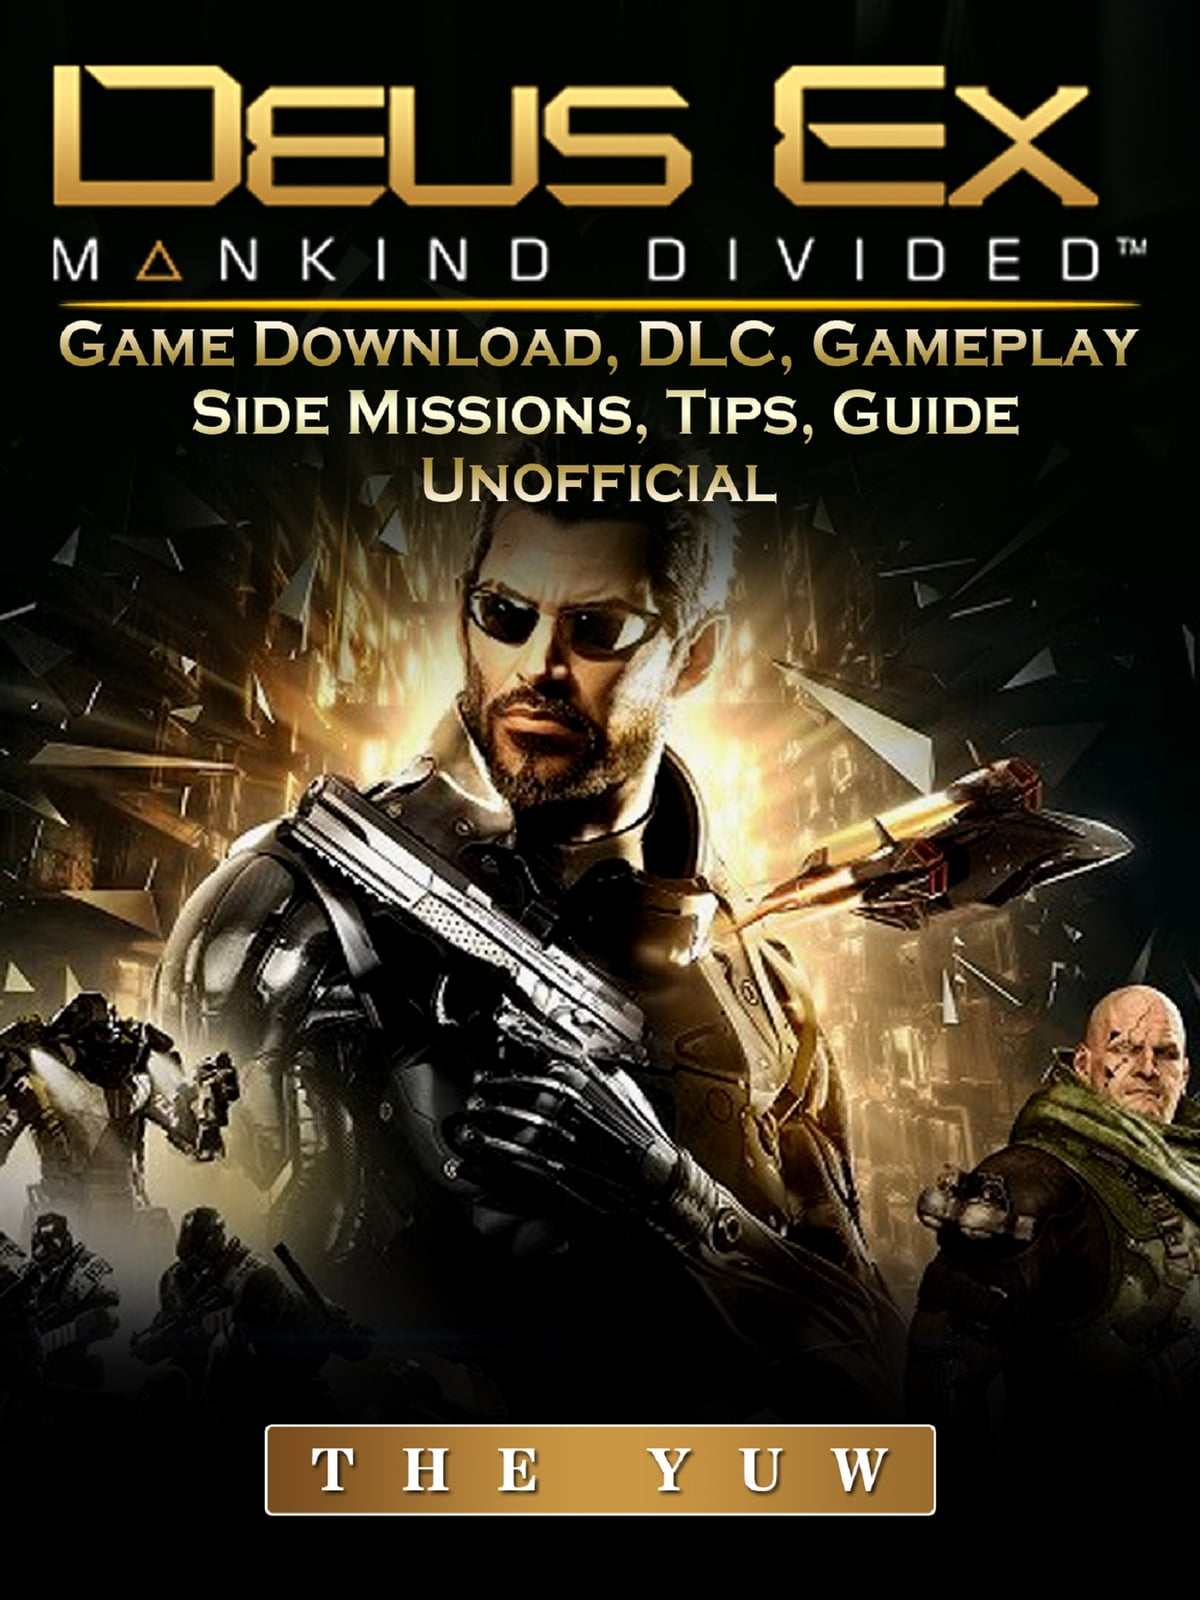 Deus Ex Mankind Game Download, DLC, Gameplay, Side Missions, Tips, Guide  Unofficial eBook by The Yuw - 9781365856679 | Rakuten Kobo